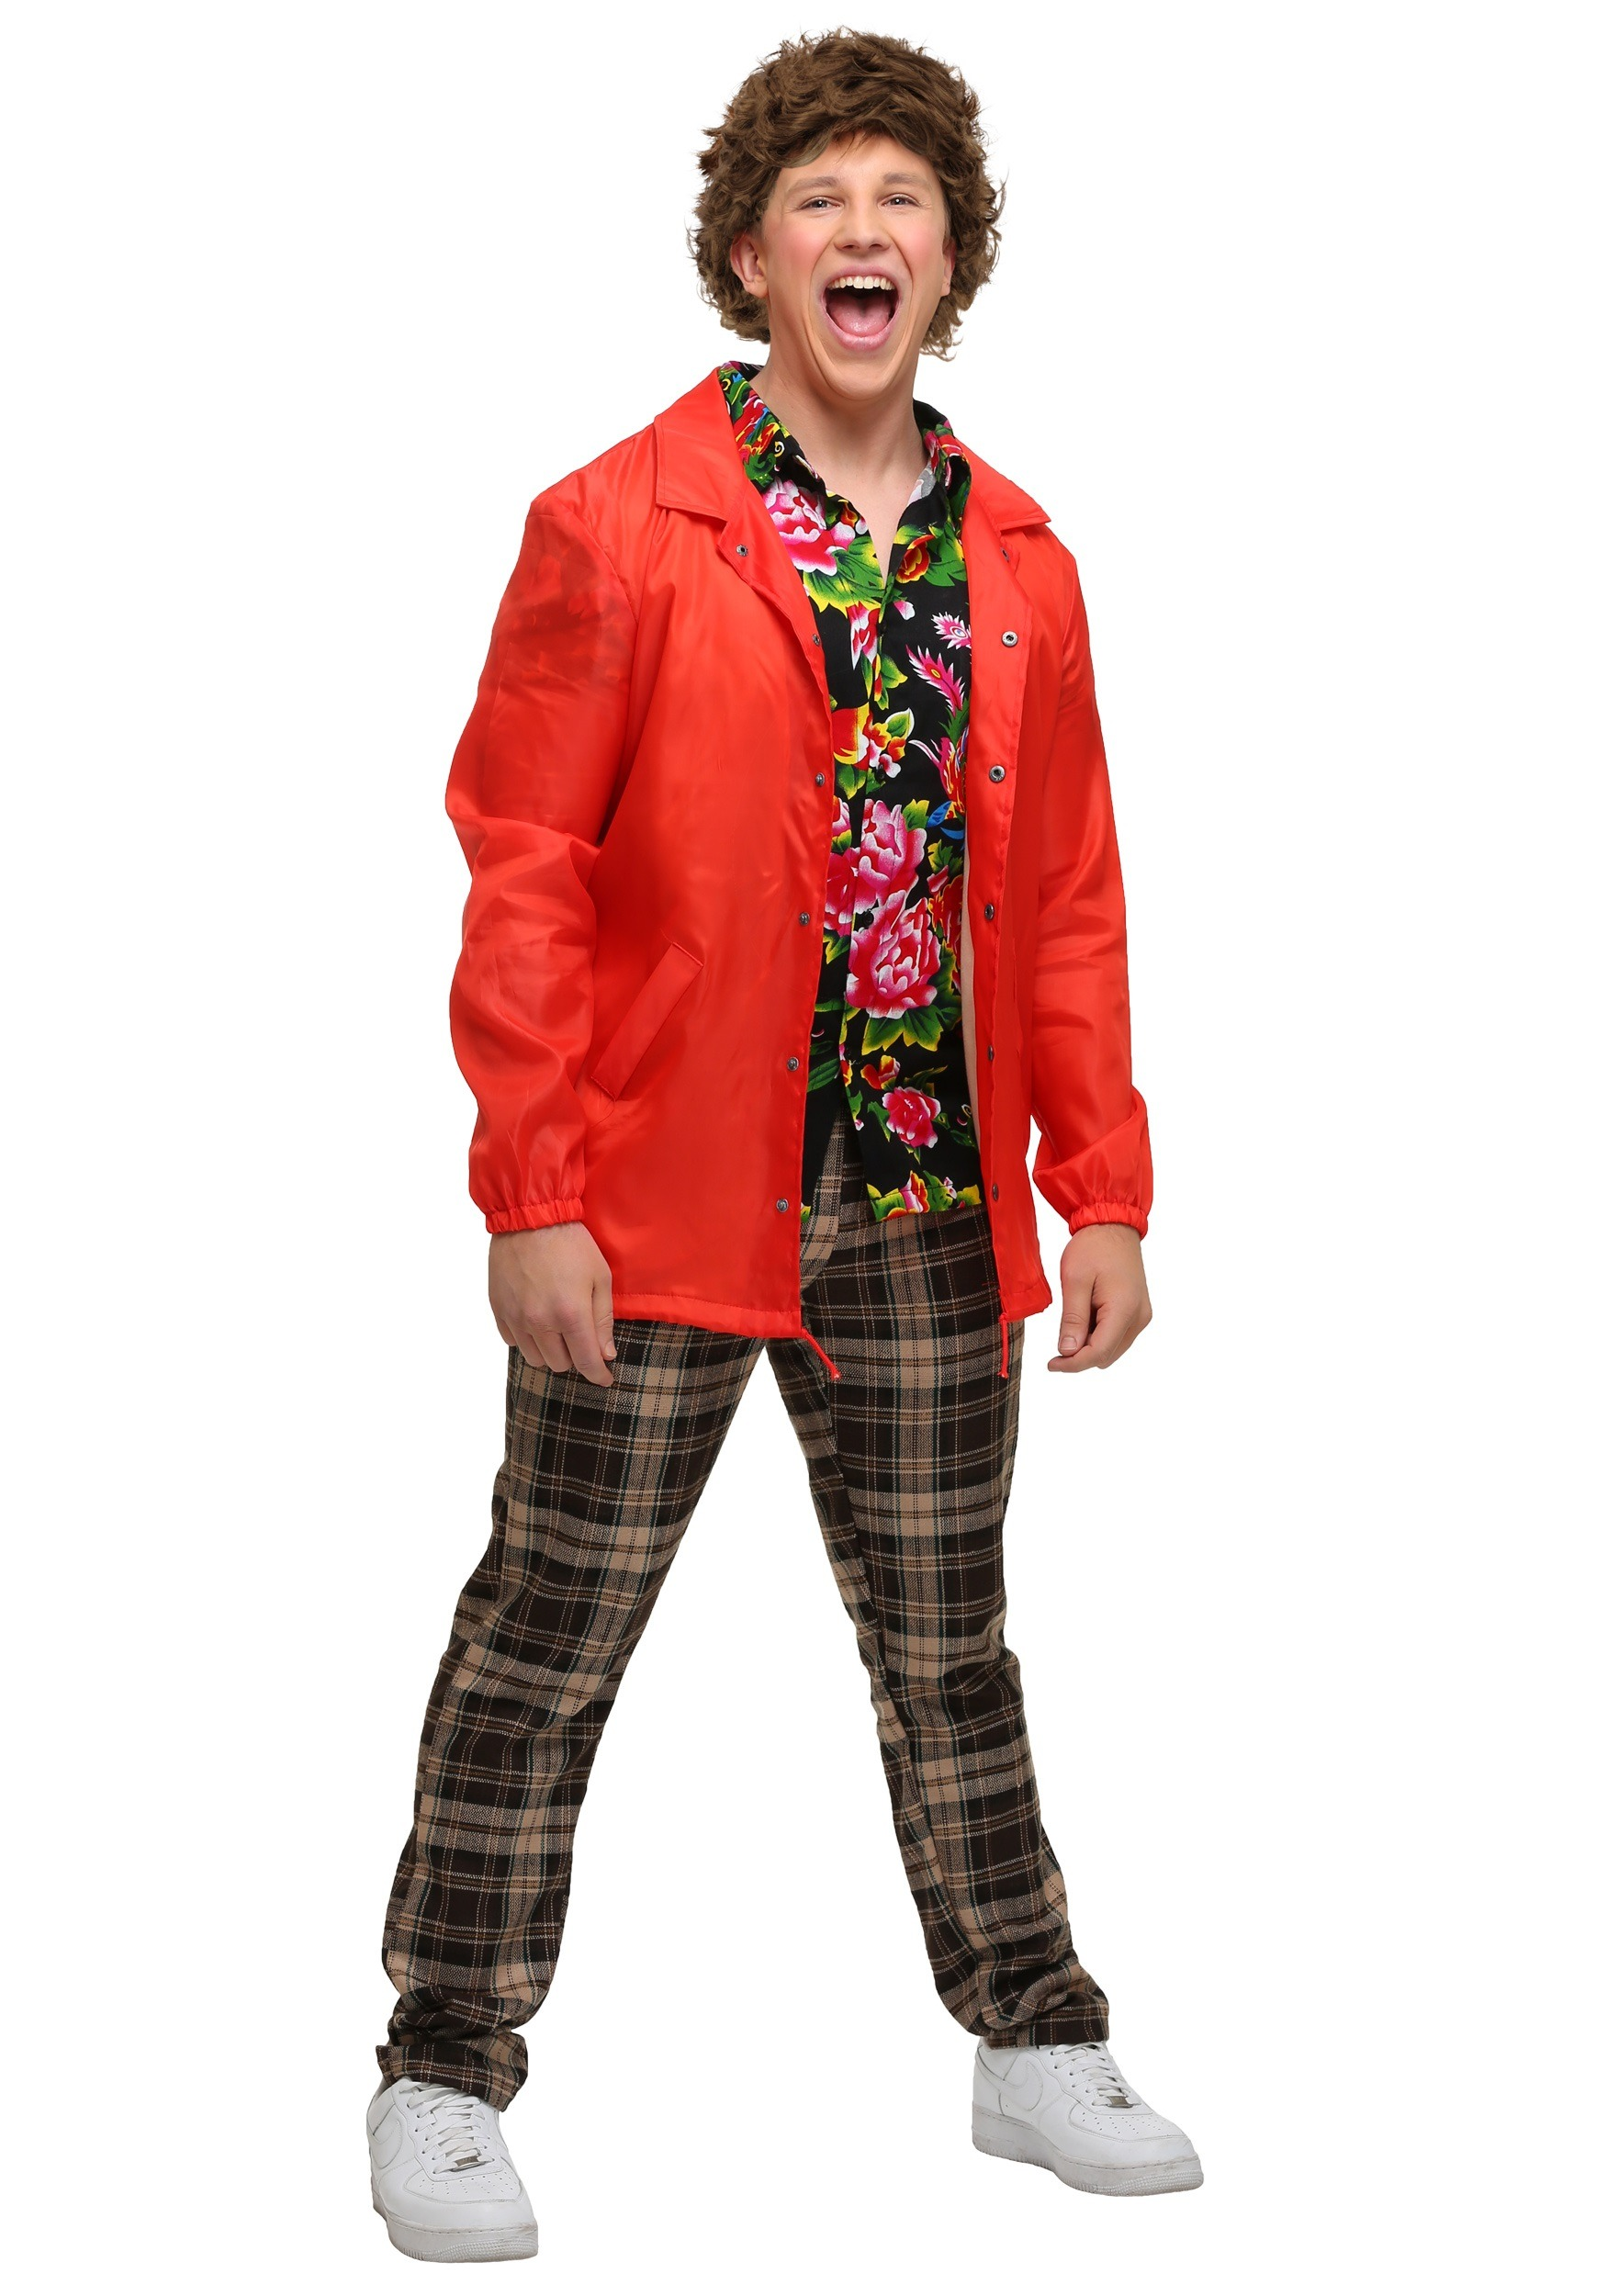 Men's Plus Goonies Chunk Costume FUN2241PL